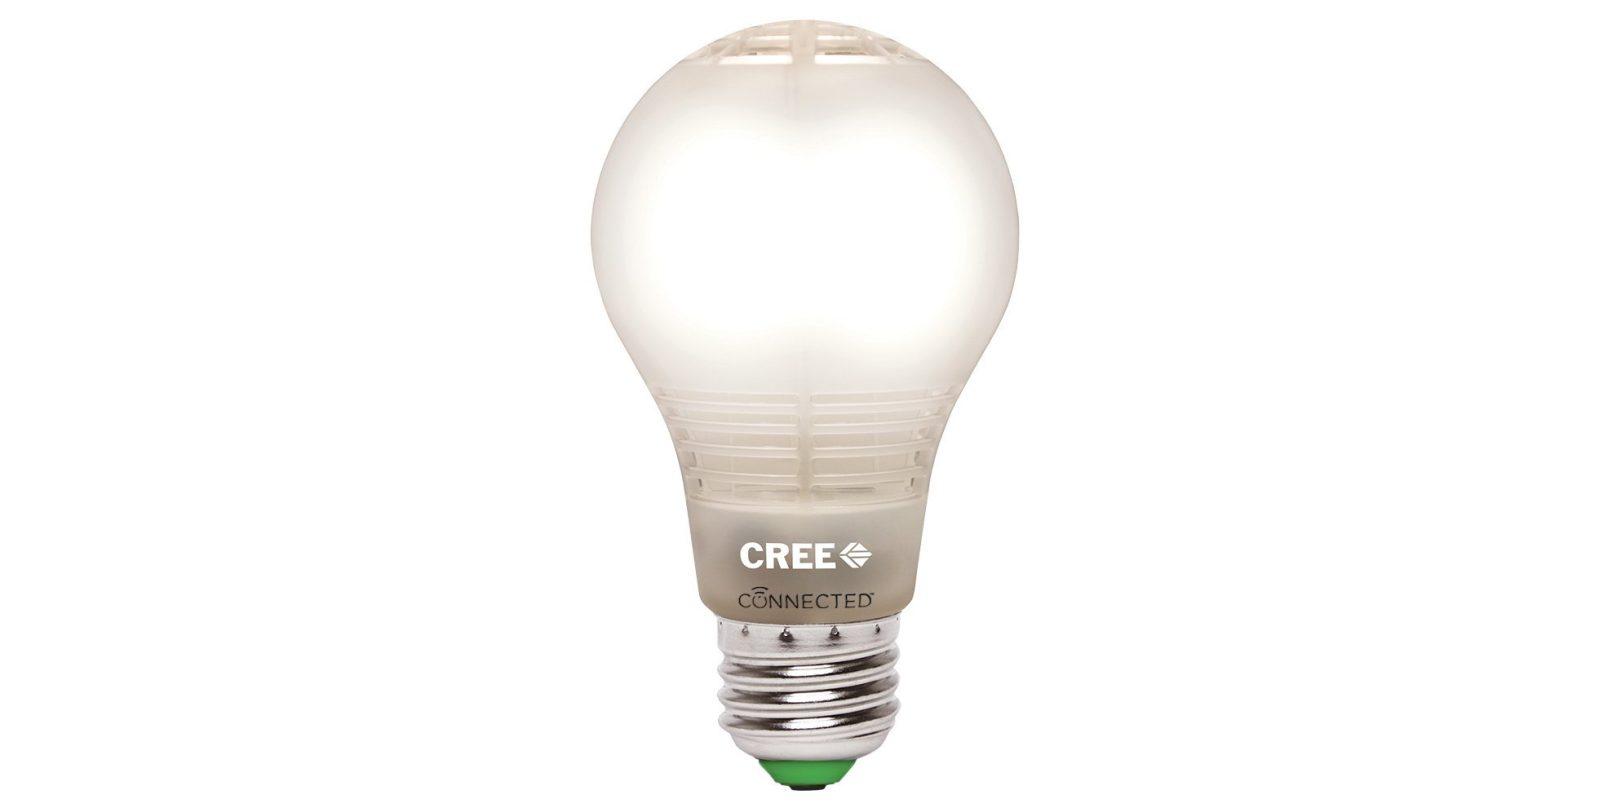 Cree Connected Smart LED Light Bulbs hit new Amazon low at $6